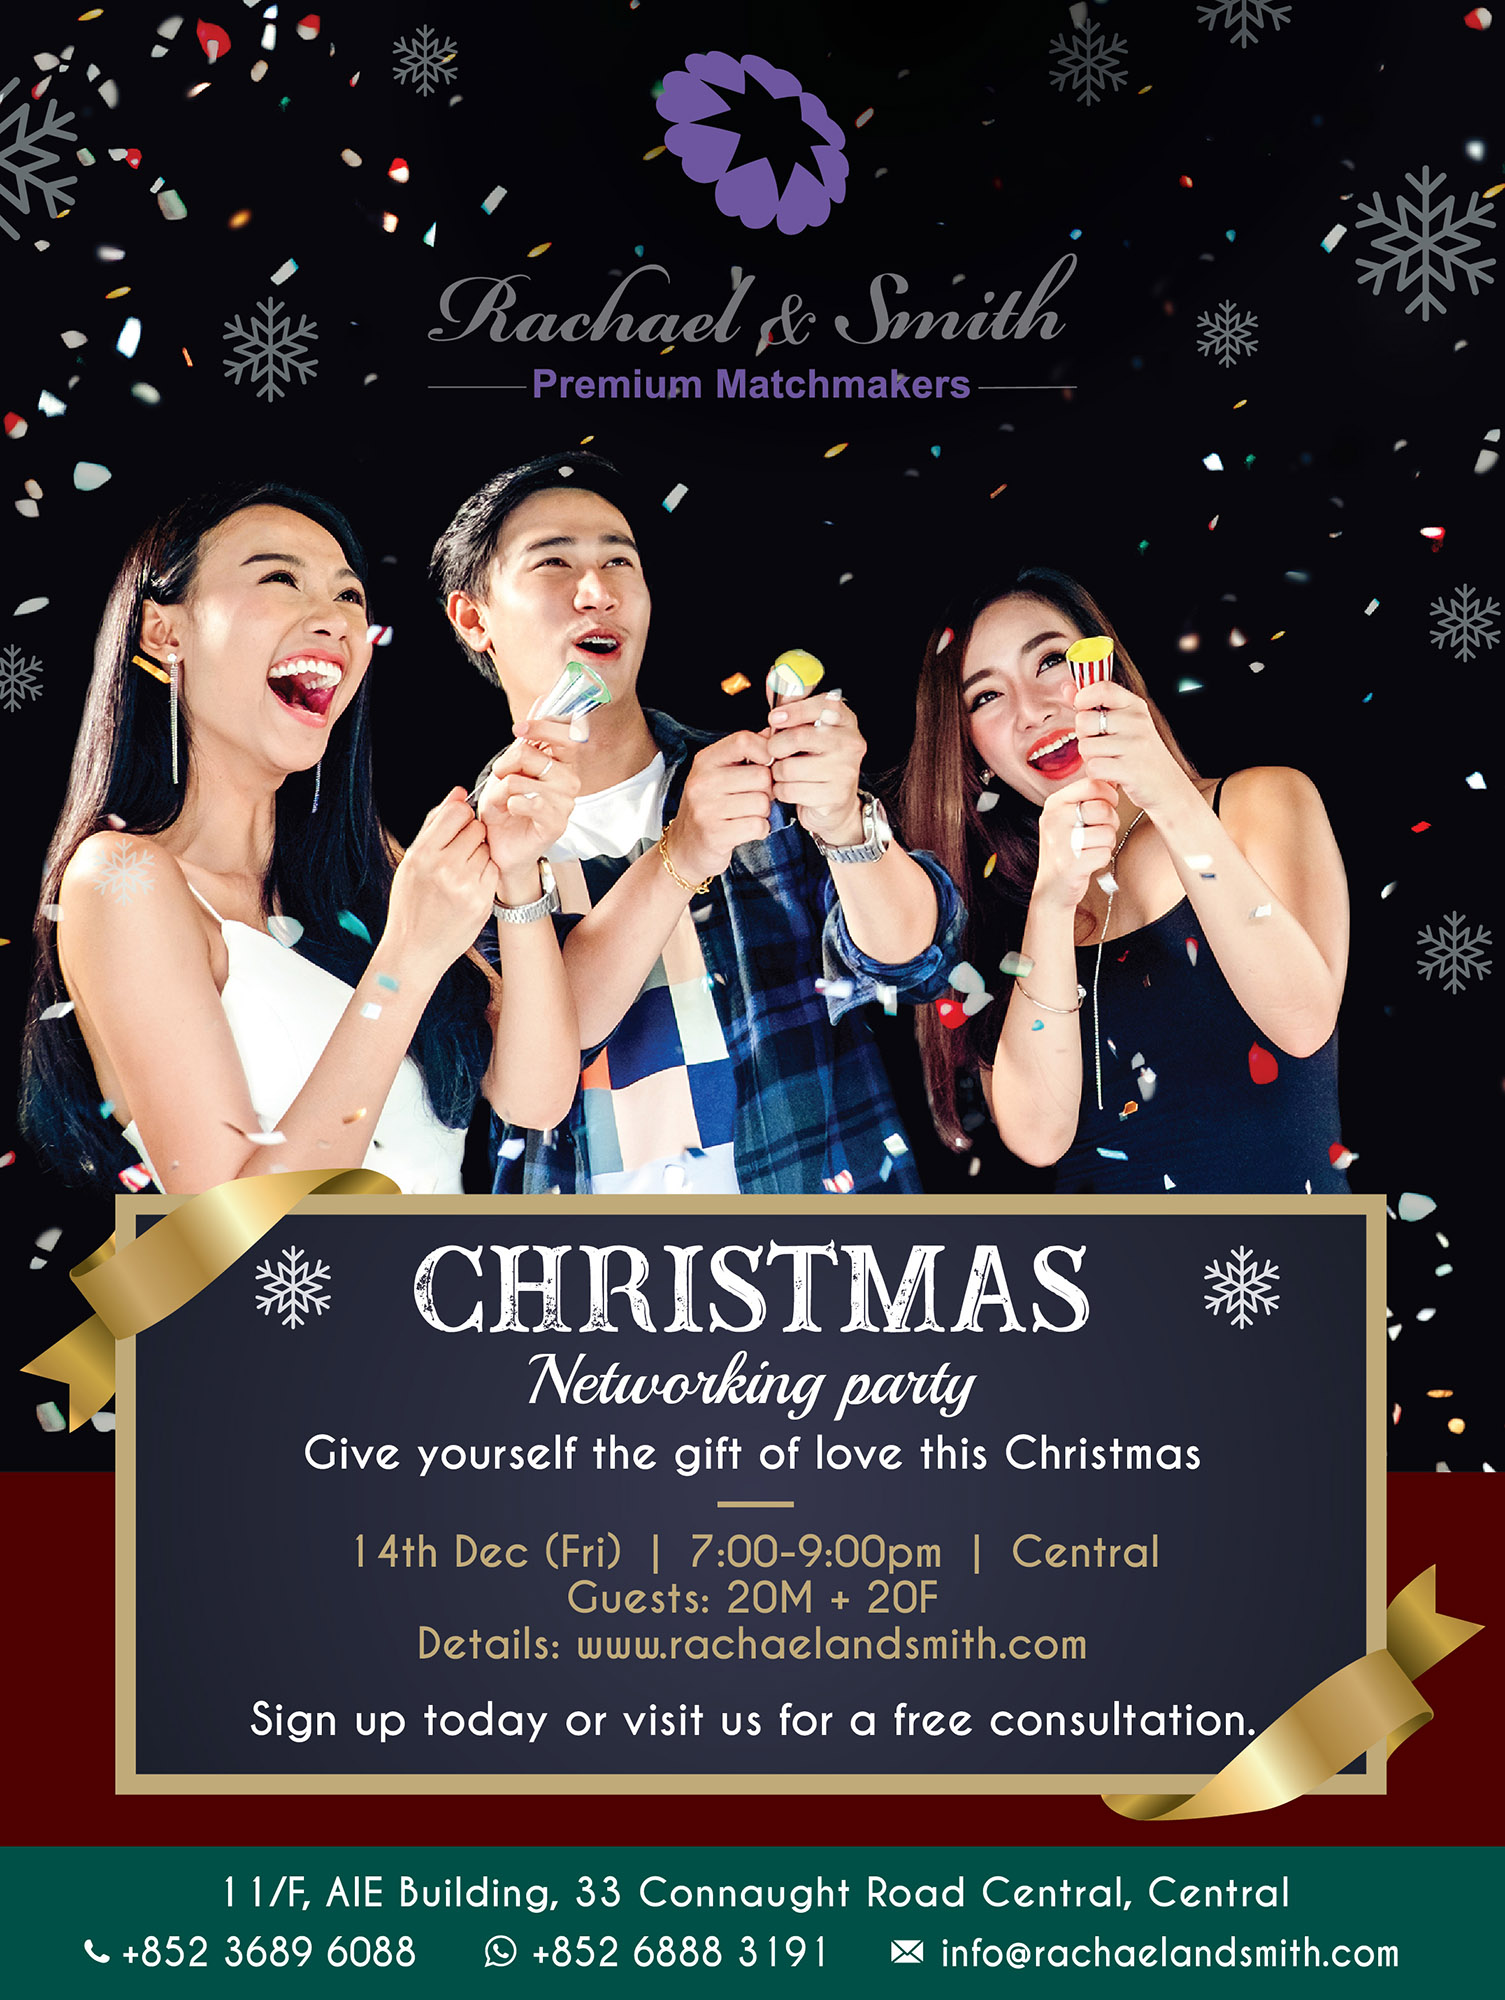 Rachael & Smith, Premium Matchmakers, Networking, Party, Christmas Party